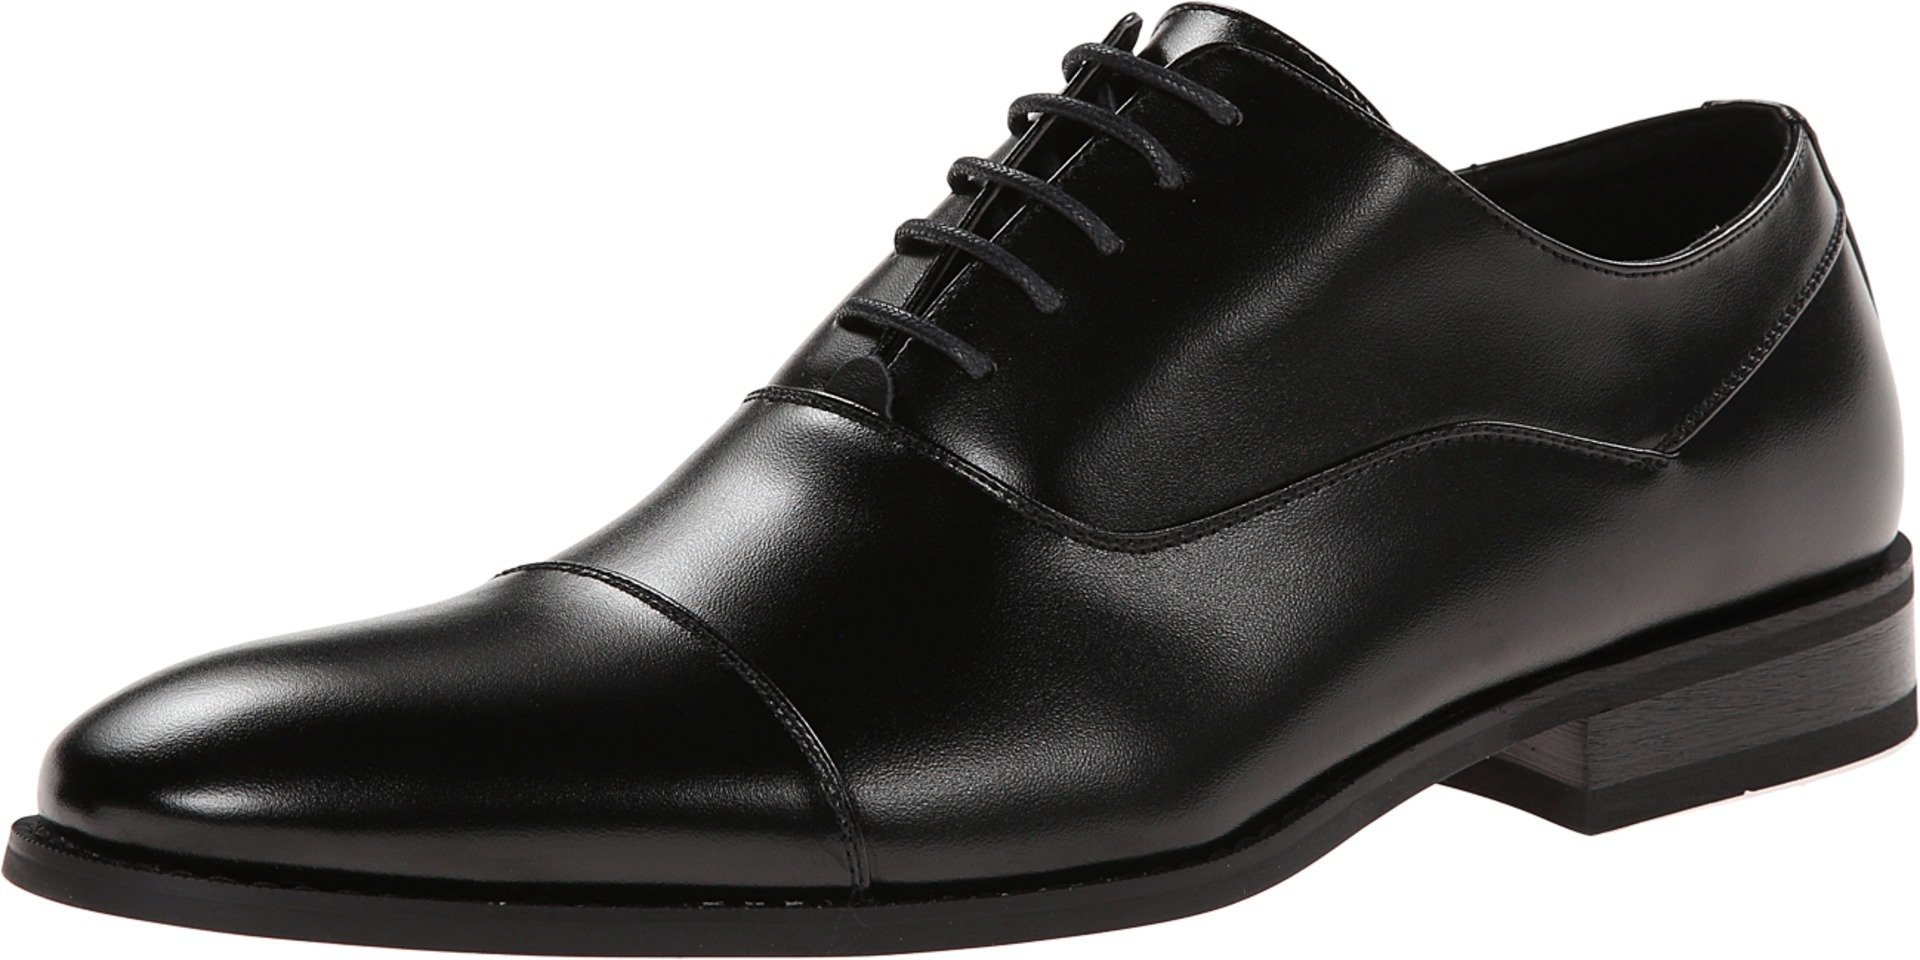 Kenneth Cole Unlisted Men's Half Time Oxford, Black, 10.5 M US by Unlisted by Kenneth Cole